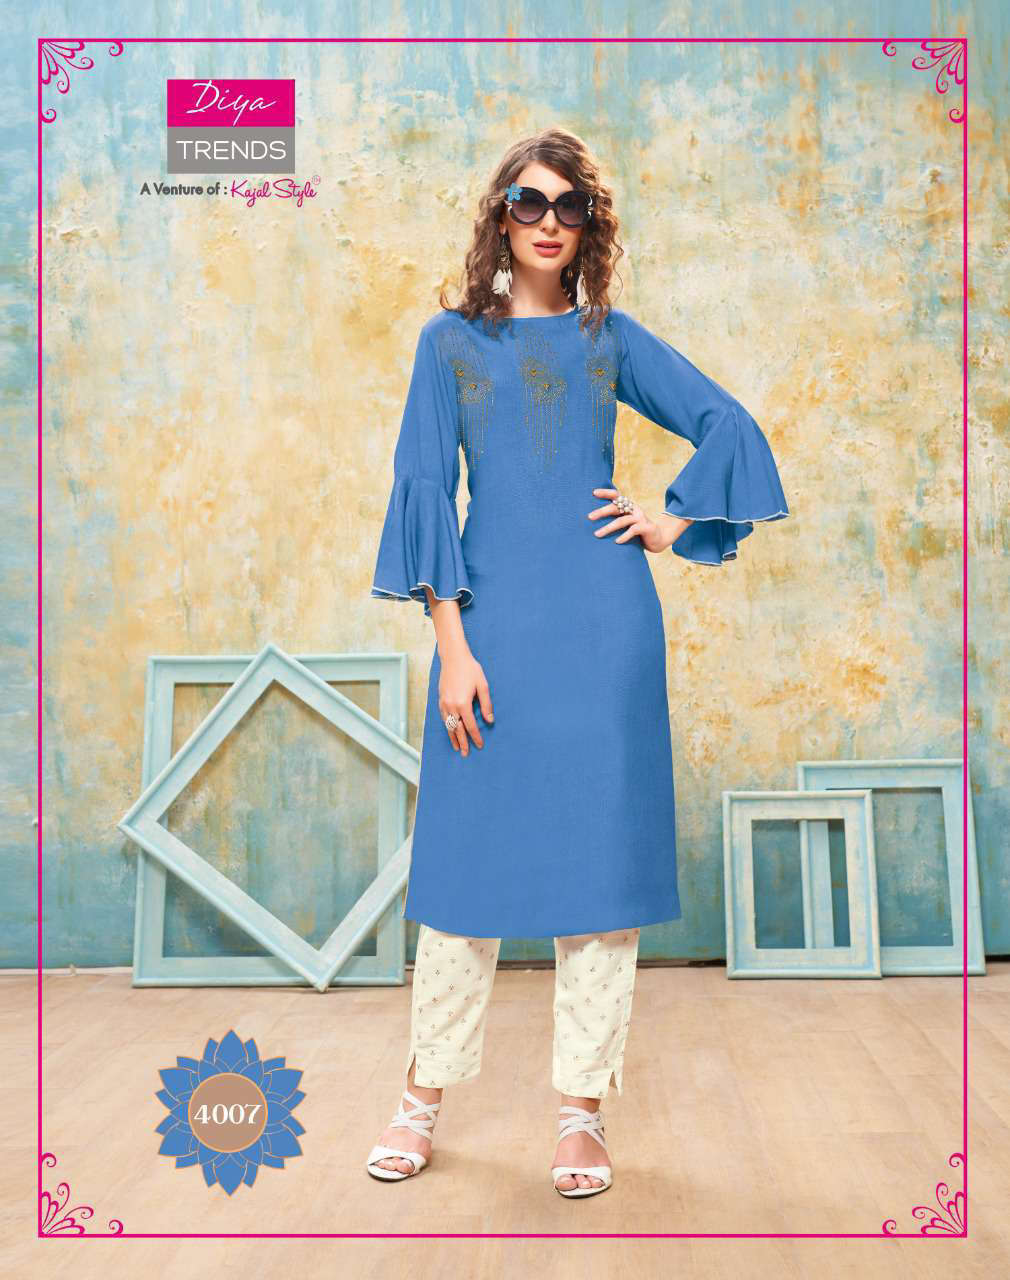 Diya Trends Forever Vol 4 by Kajal Style Kurti with Pant Wholesale Catalog 12 Pcs 8 - Diya Trends Forever Vol 4 by Kajal Style Kurti with Pant Wholesale Catalog 12 Pcs